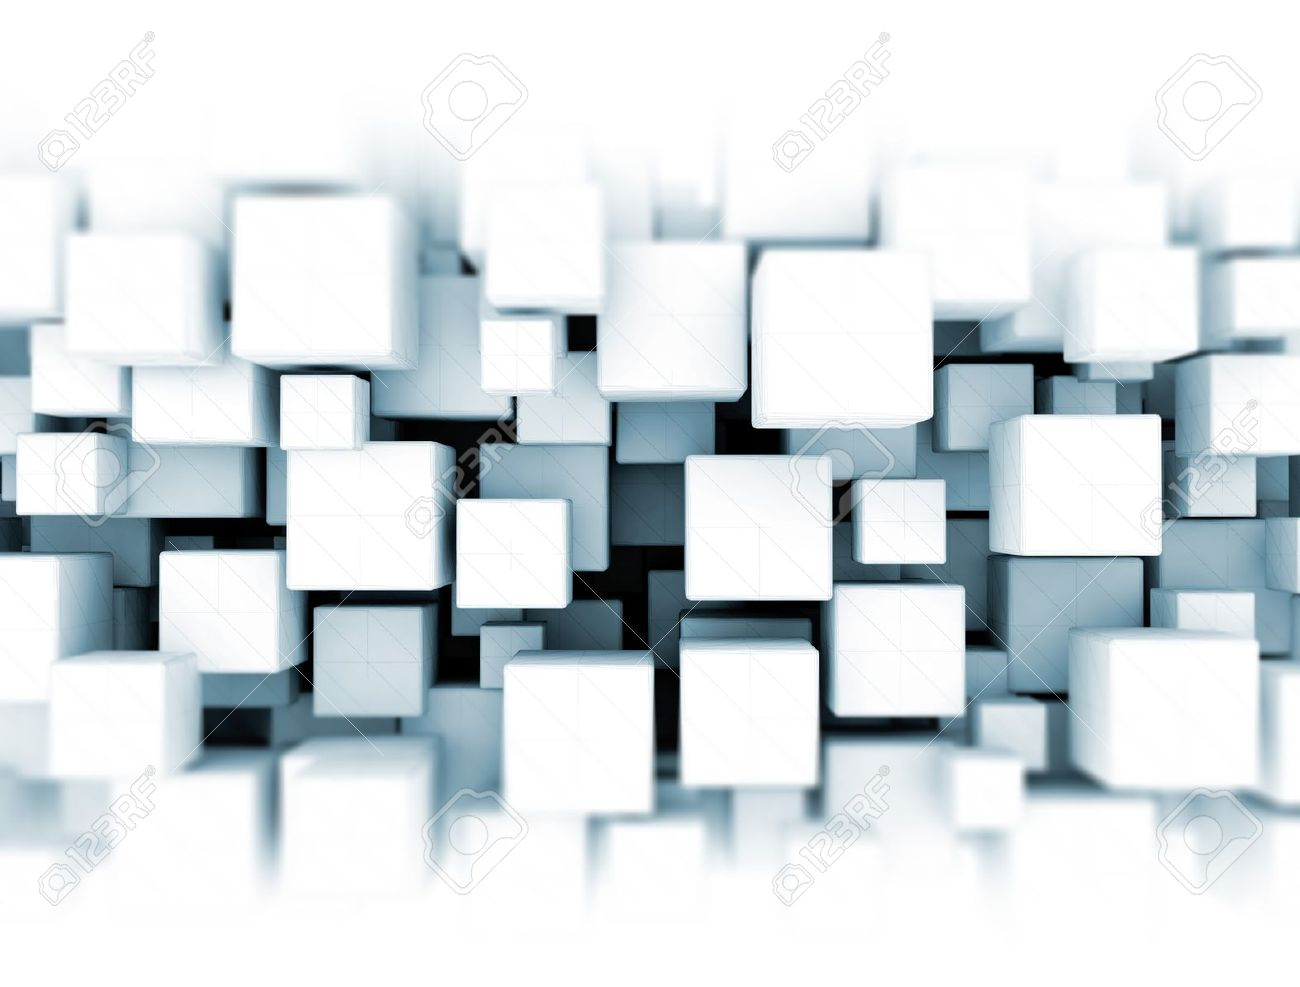 3D Cubes Background Stock Photo, Picture And Royalty Free Image ...